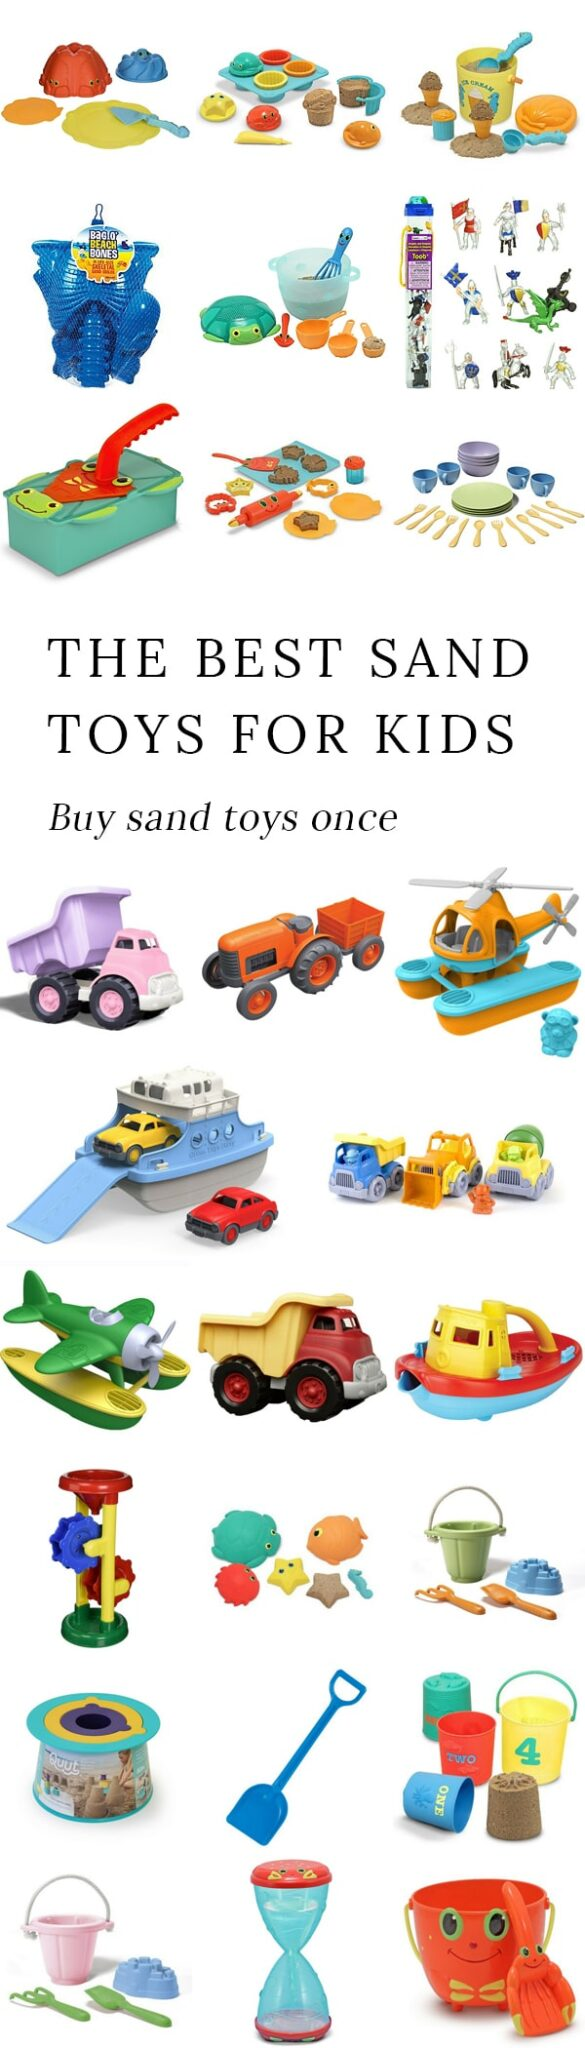 Purchasing high-quality sand toys for kids once saves money and prevents pounds of worthless, broken plastic from entering the landfill. #sandtoys #summertoys #giftsforkids #beachtoys #toylist #outdoorplay